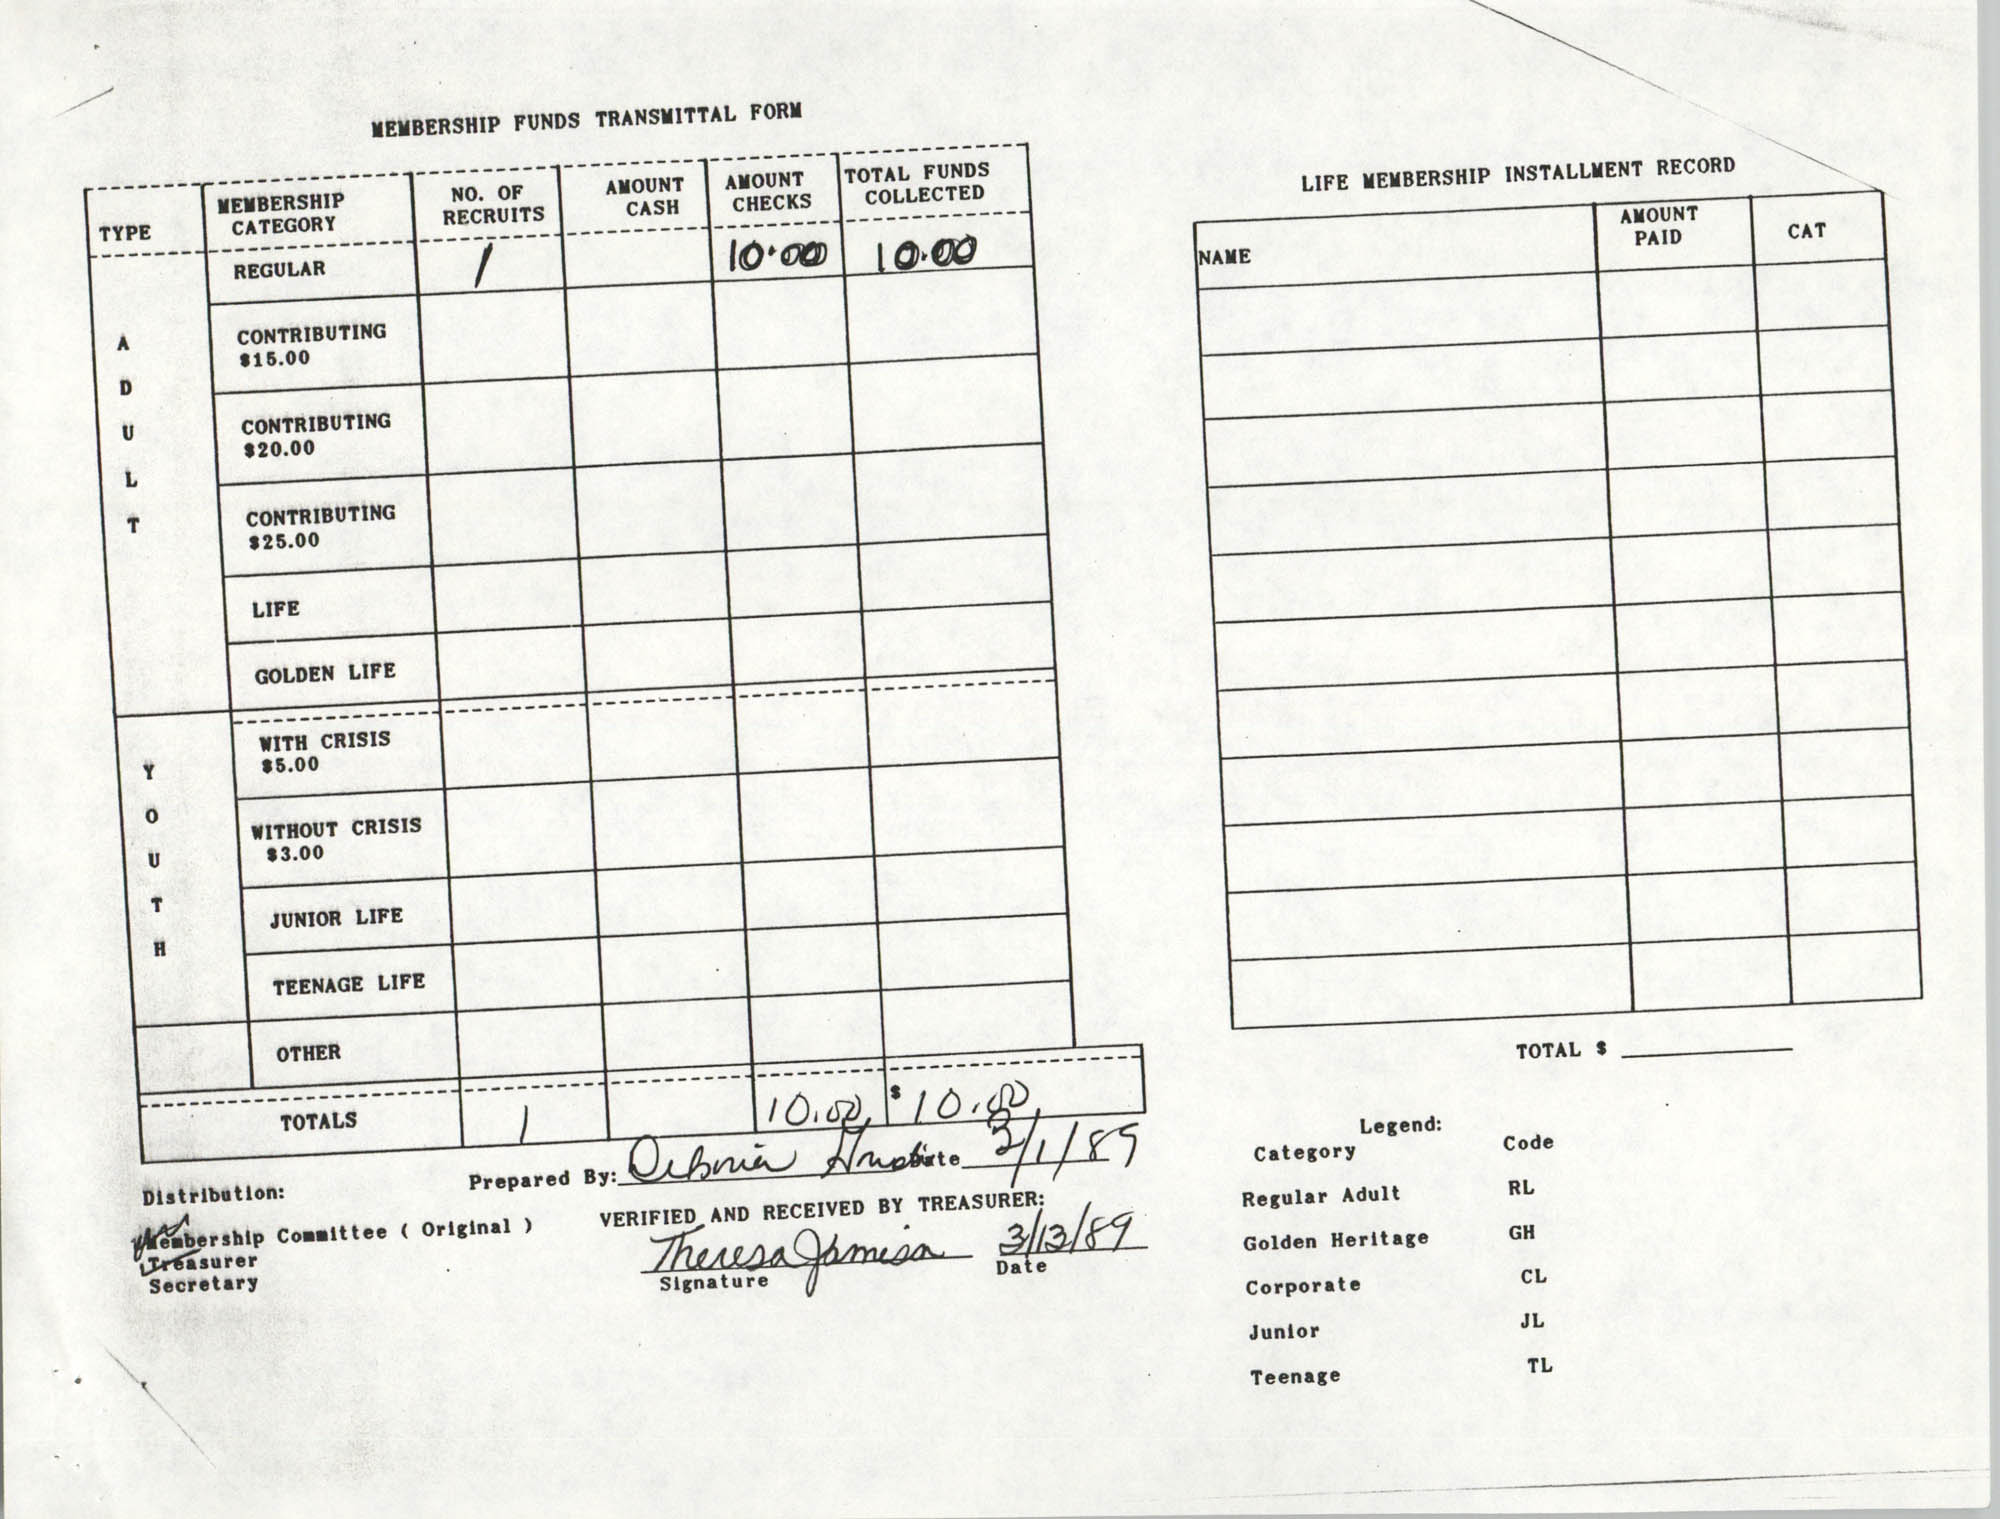 Charleston Branch of the NAACP Funds Transmittal Forms, February 1989, Page 1